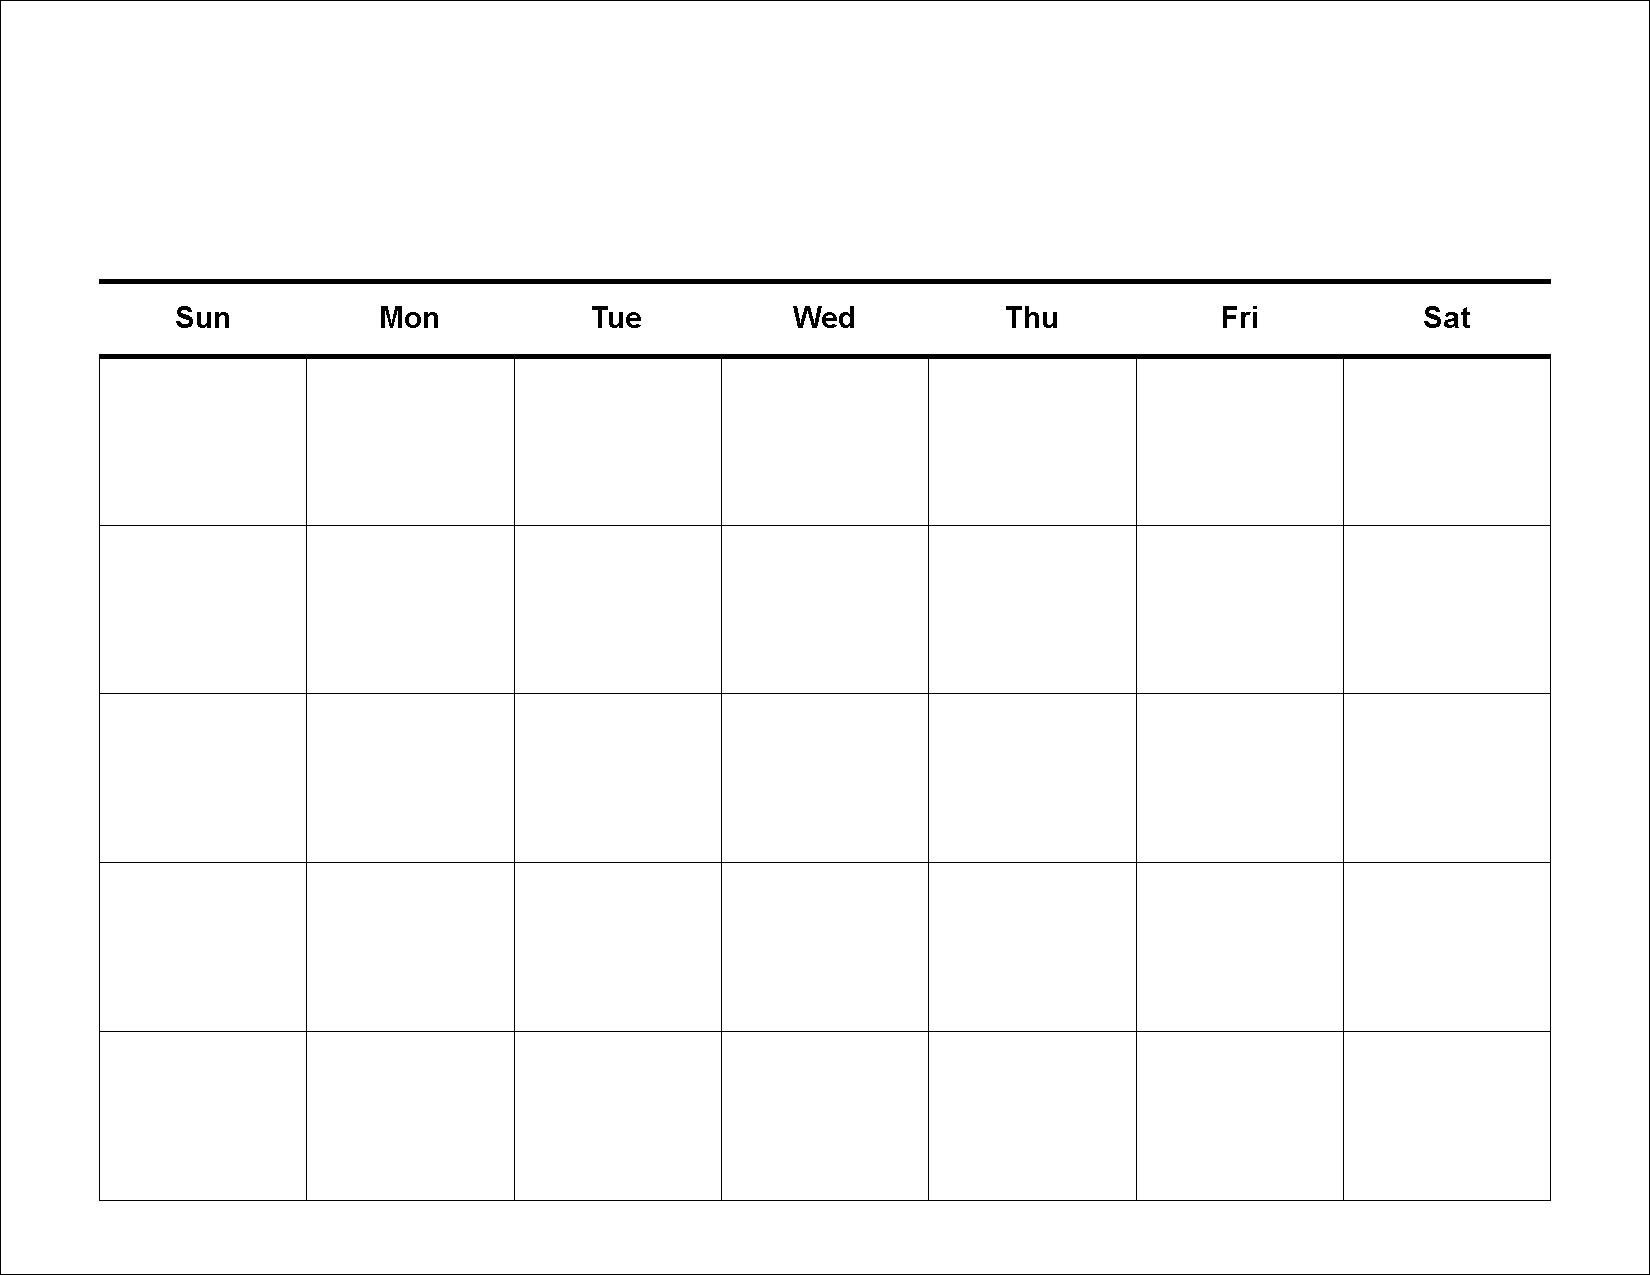 4 Week Calendar To Print | Template Calendar Printable regarding 4 Week Calendar To Print